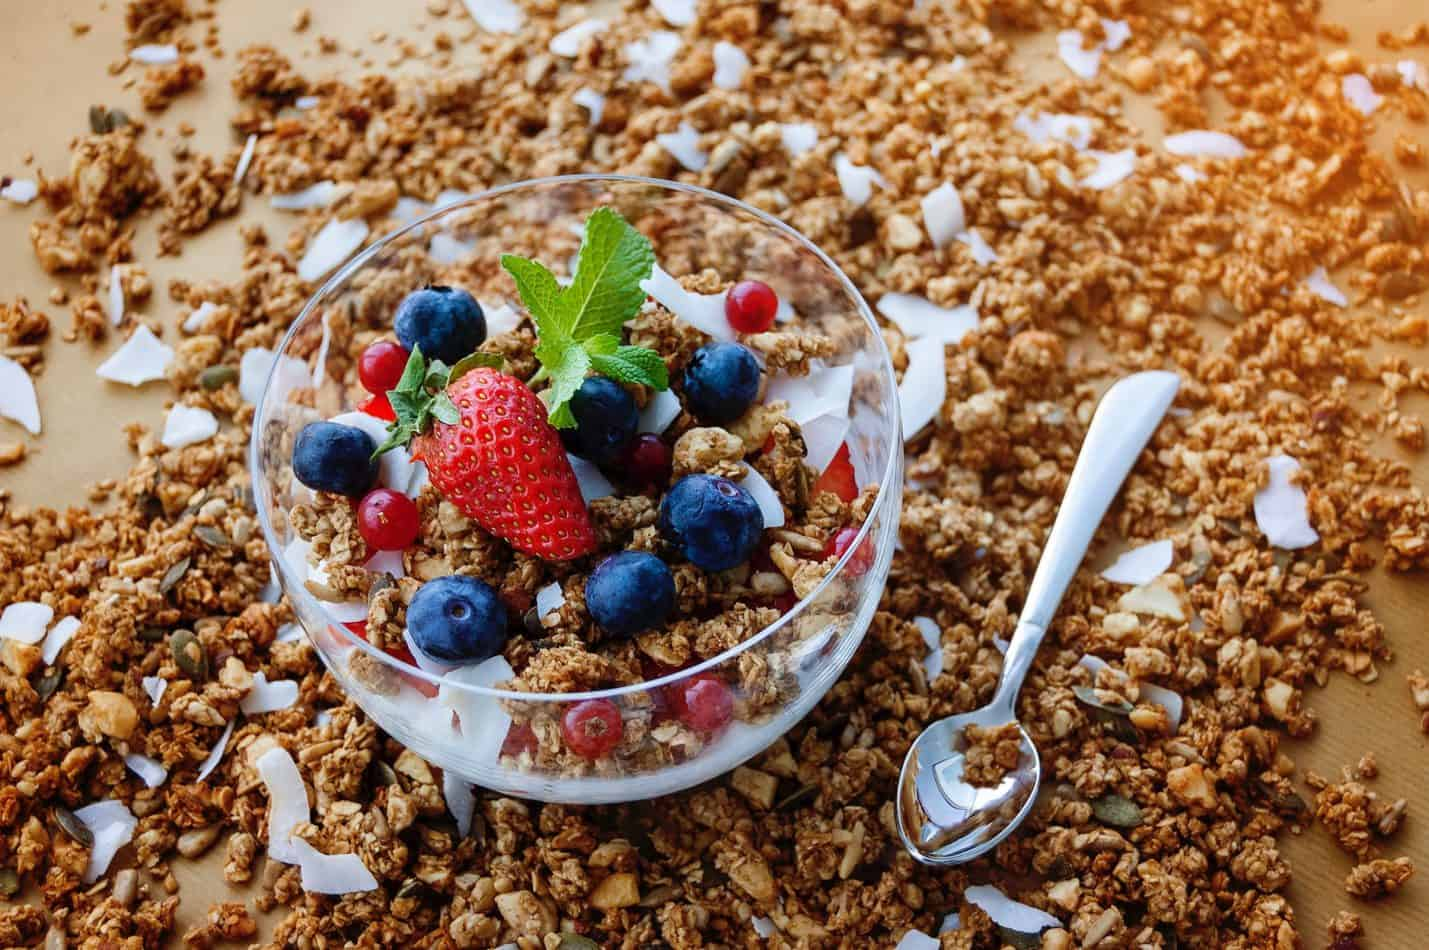 Granola with blueberries, strawberries and mint